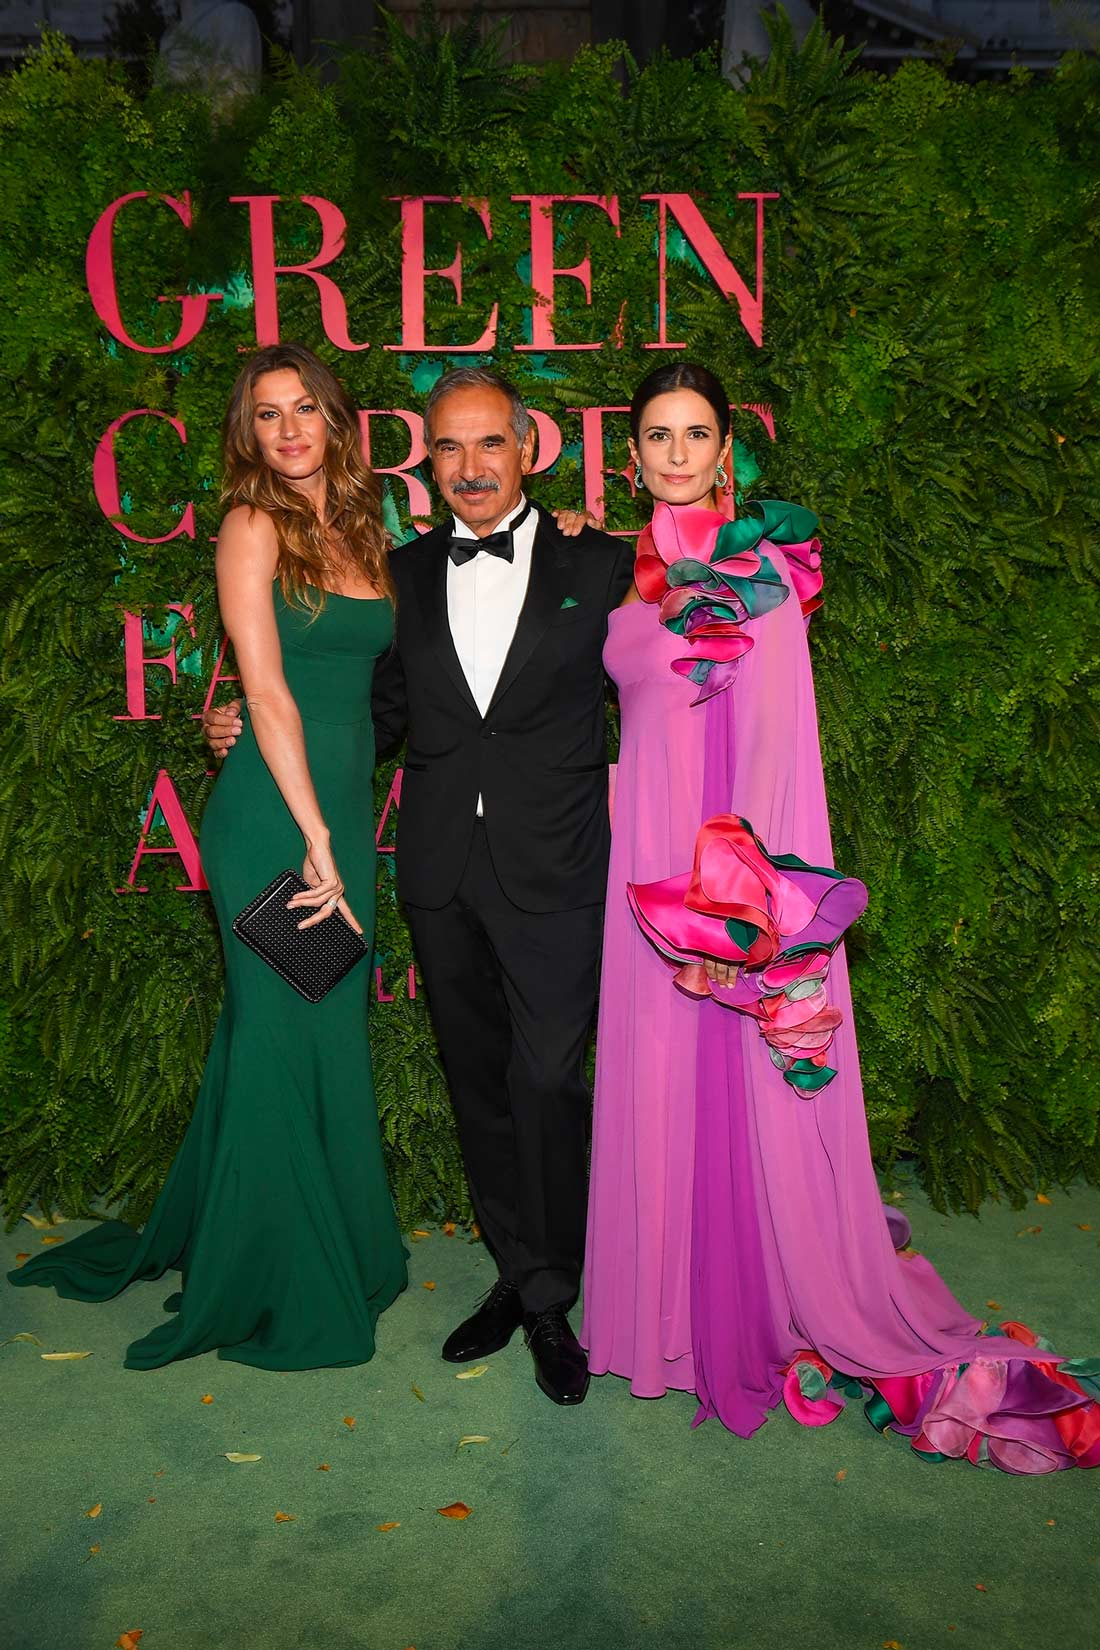 Green Carpet Fashion Awards Milano 2017 - Gisele Bundchen and Livia Firth - Hair & Makeup Massimo Serini